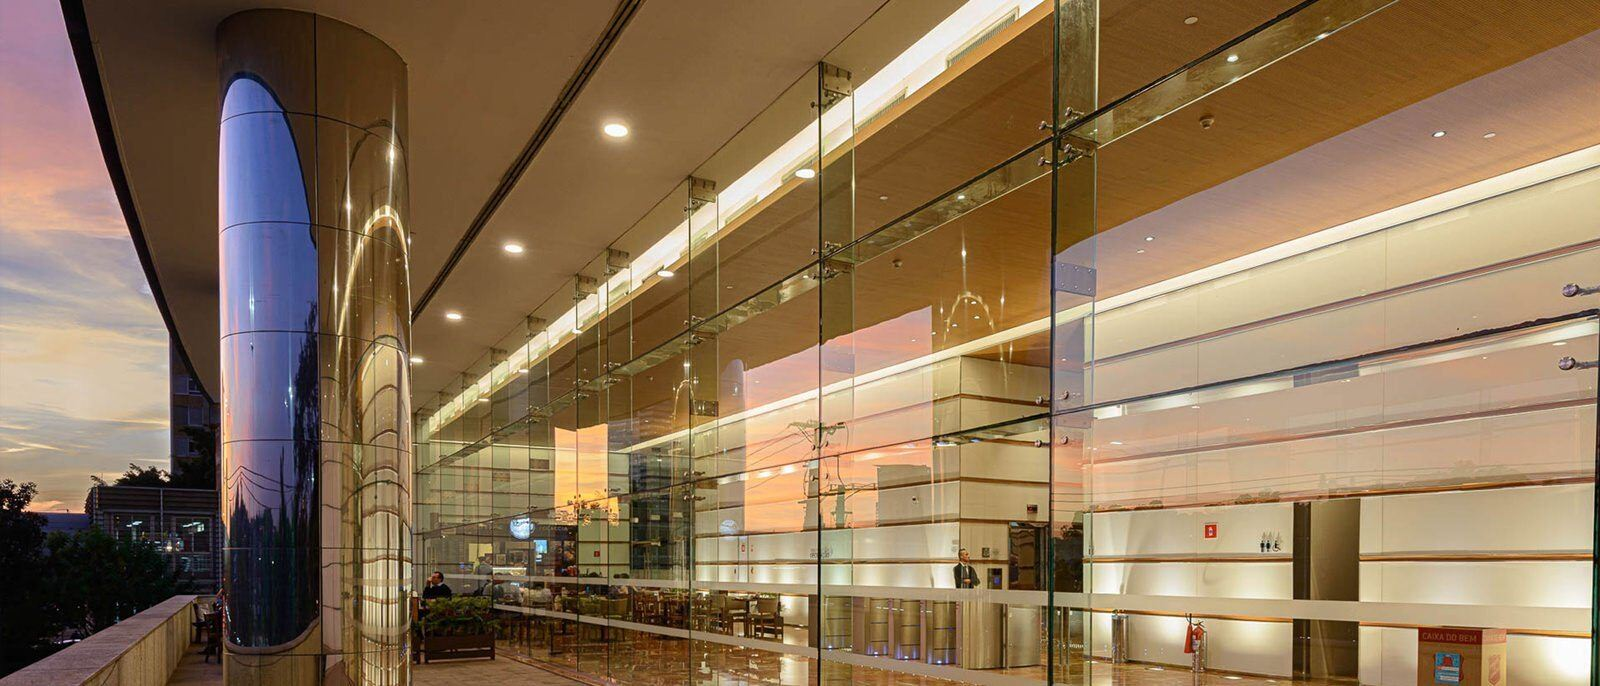 A building that has large glass windows and doors and stainless steel columns on the outside of it.